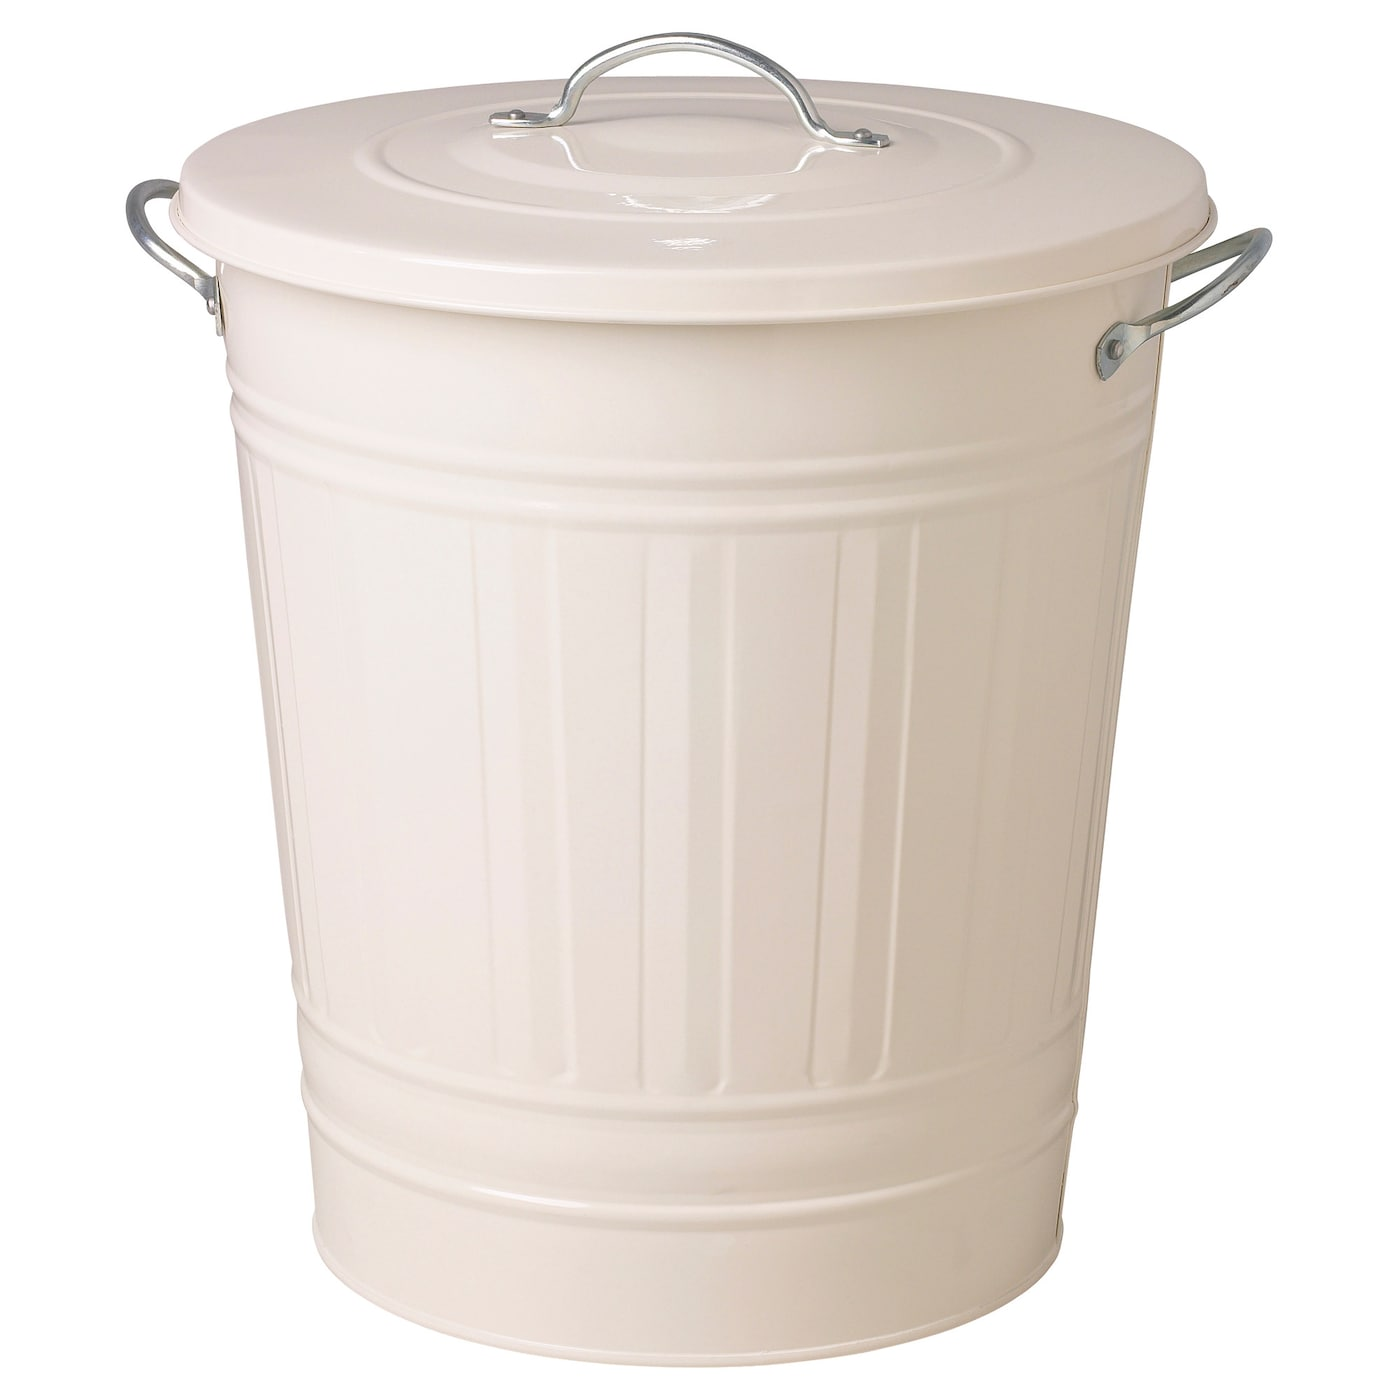 White Kitchen Bin knodd bin with lid white 40 l - ikea